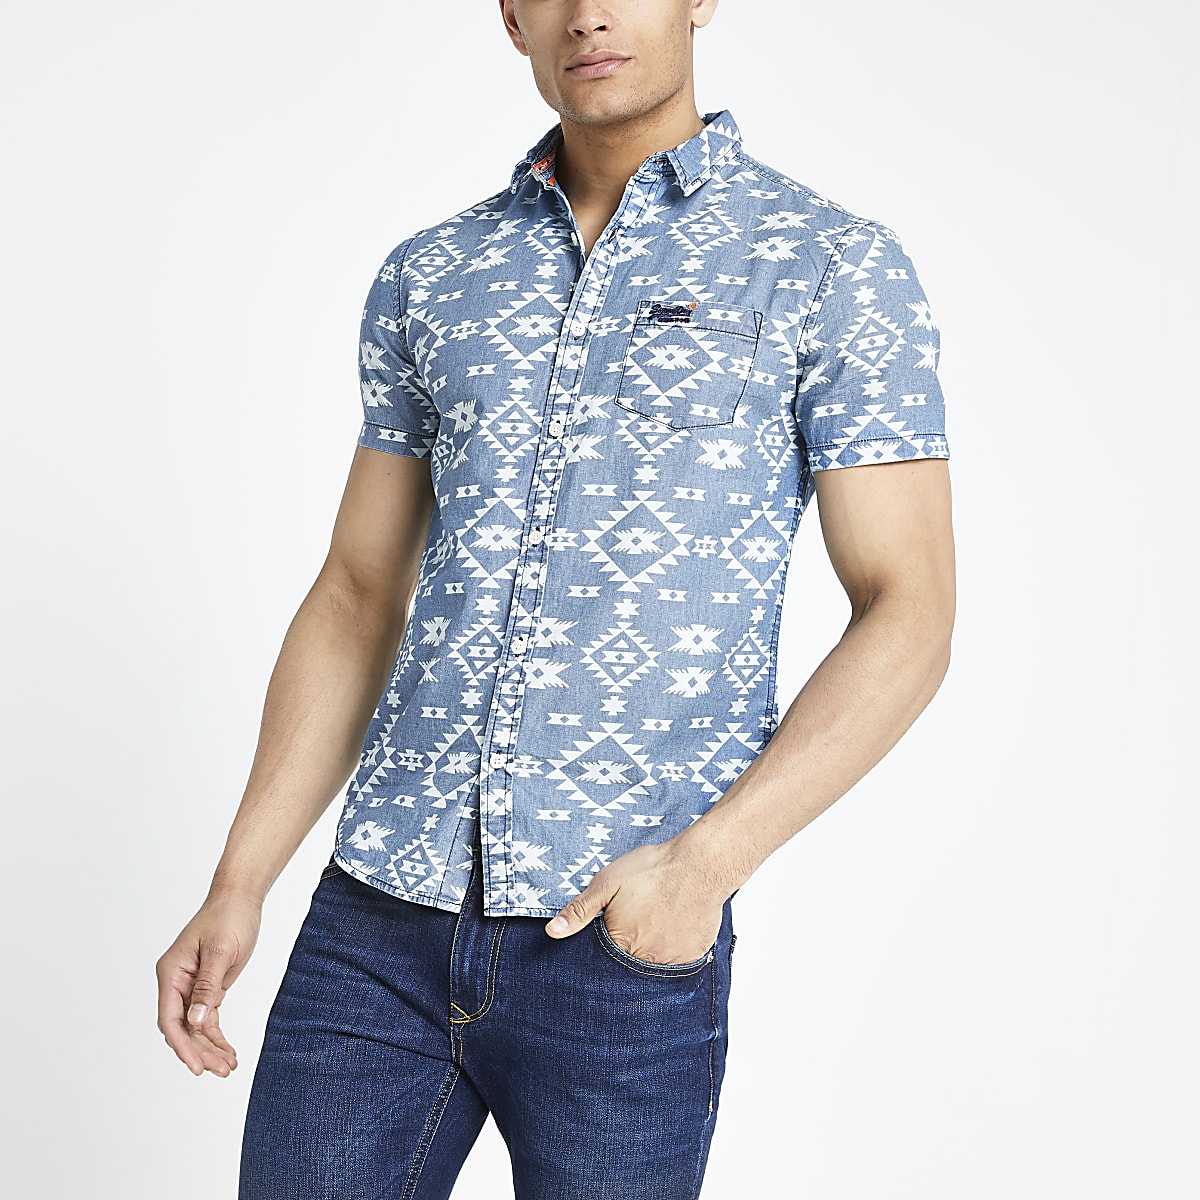 Superdry blue print short sleeve shirt